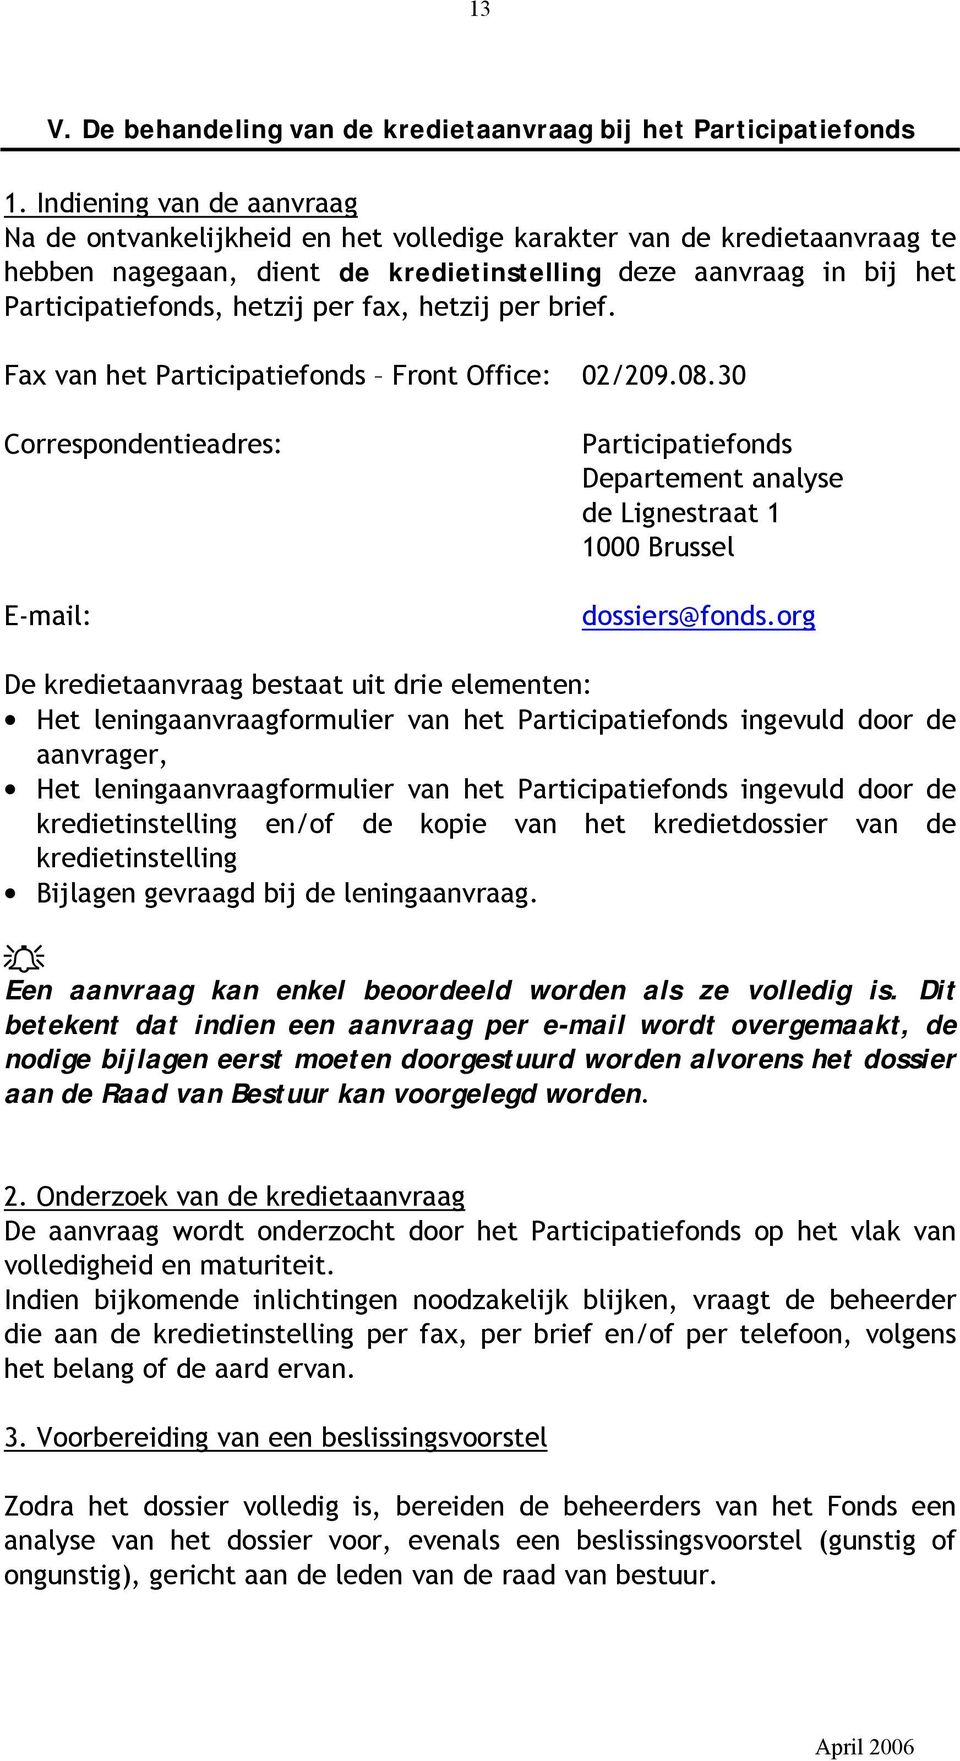 fax, hetzij per brief. Fax van het Participatiefonds Front Office: 02/209.08.30 Correspondentieadres: E-mail: Participatiefonds Departement analyse de Lignestraat 1 1000 Brussel dossiers@fonds.